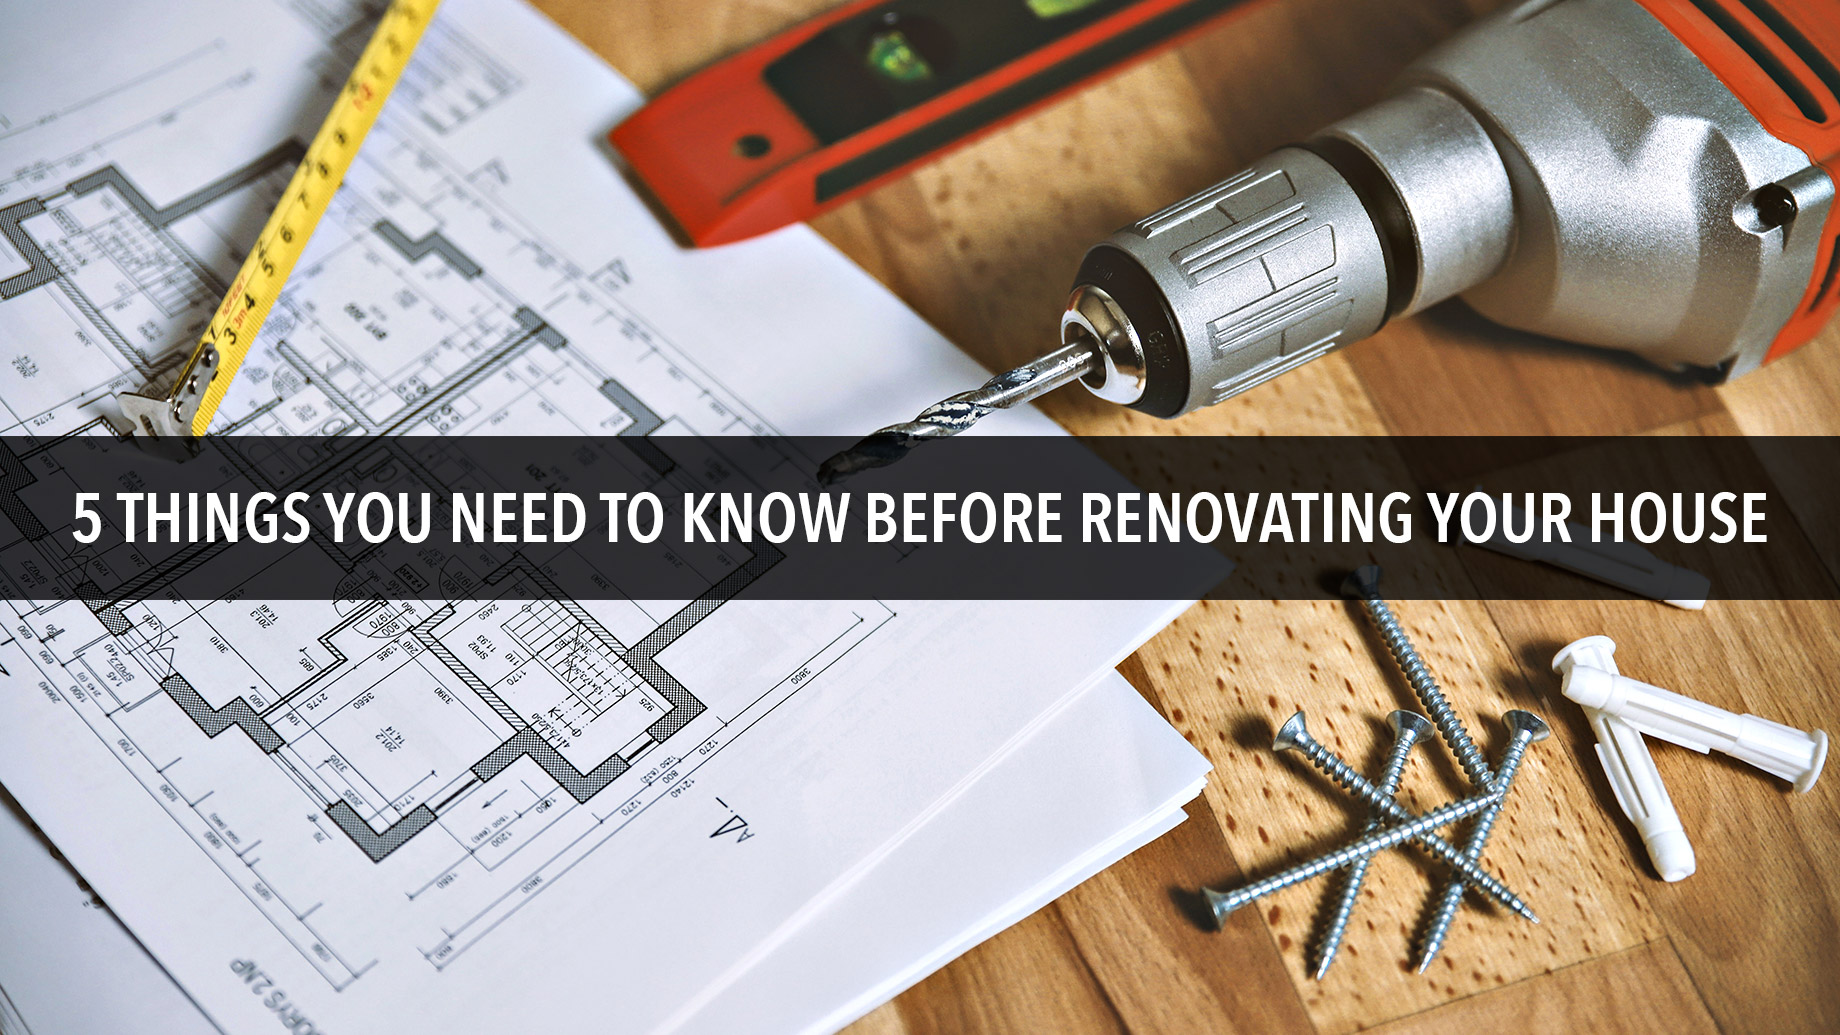 5 Things You Need to Know Before Renovating Your House